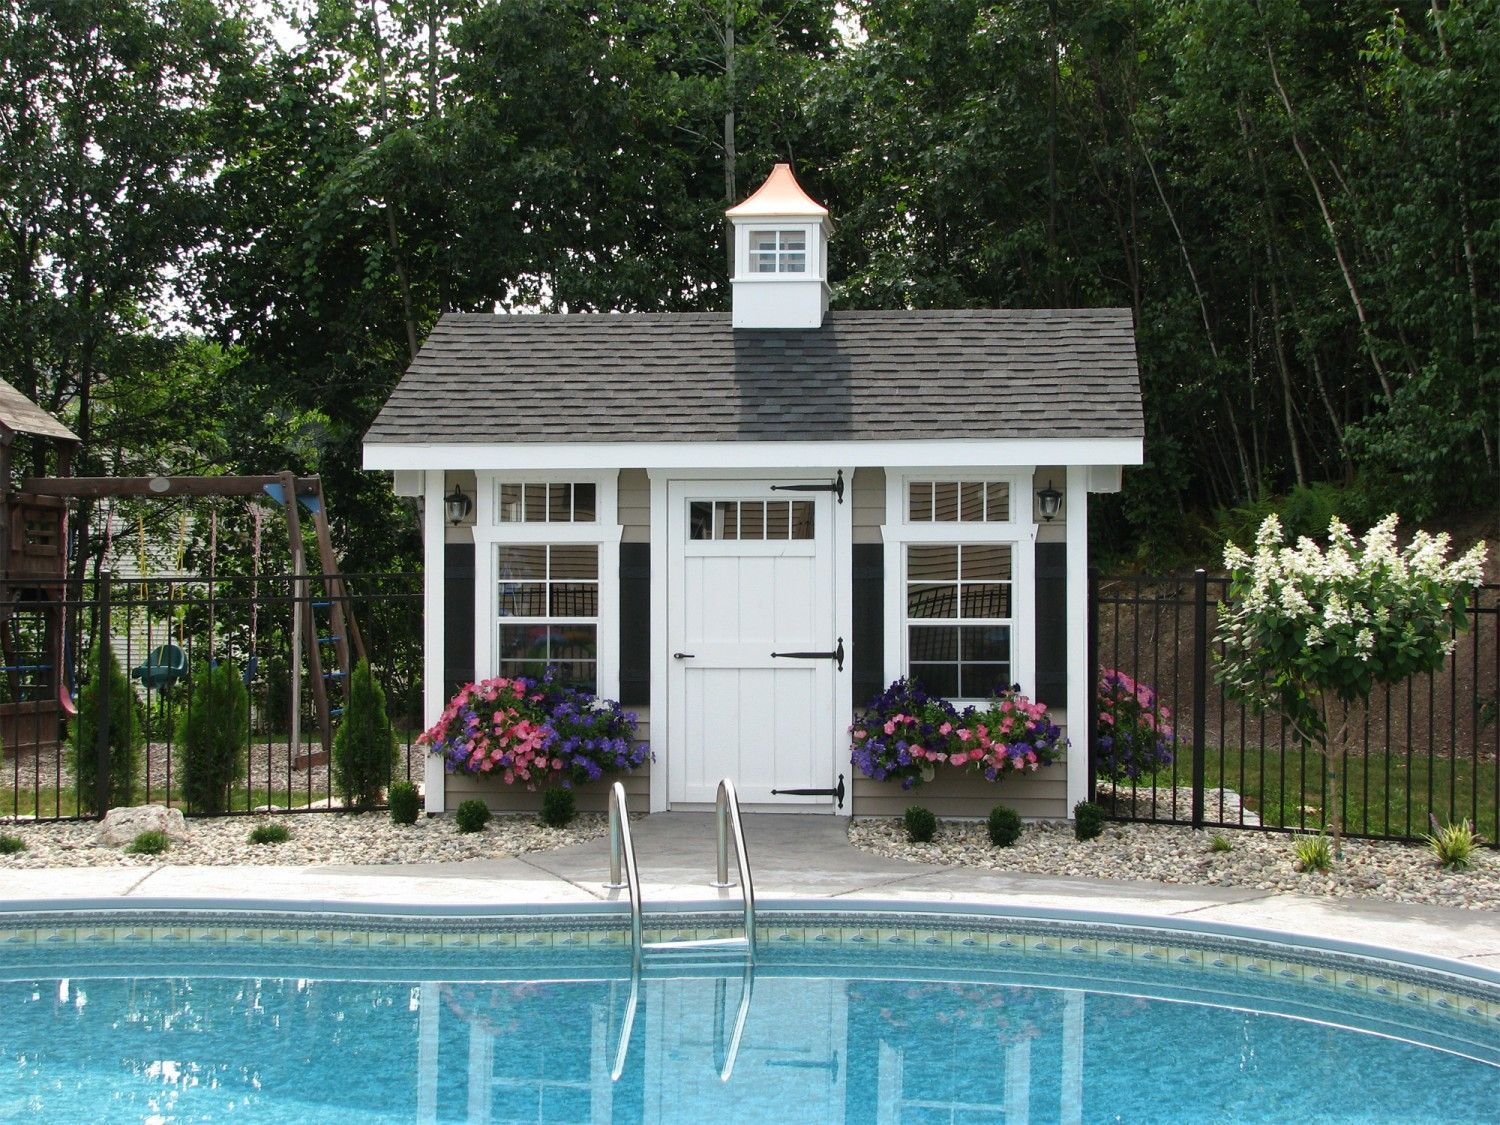 sheds entry pool hideaways way wood of enclosure georgia infinity fence pools and shed equipment with llc